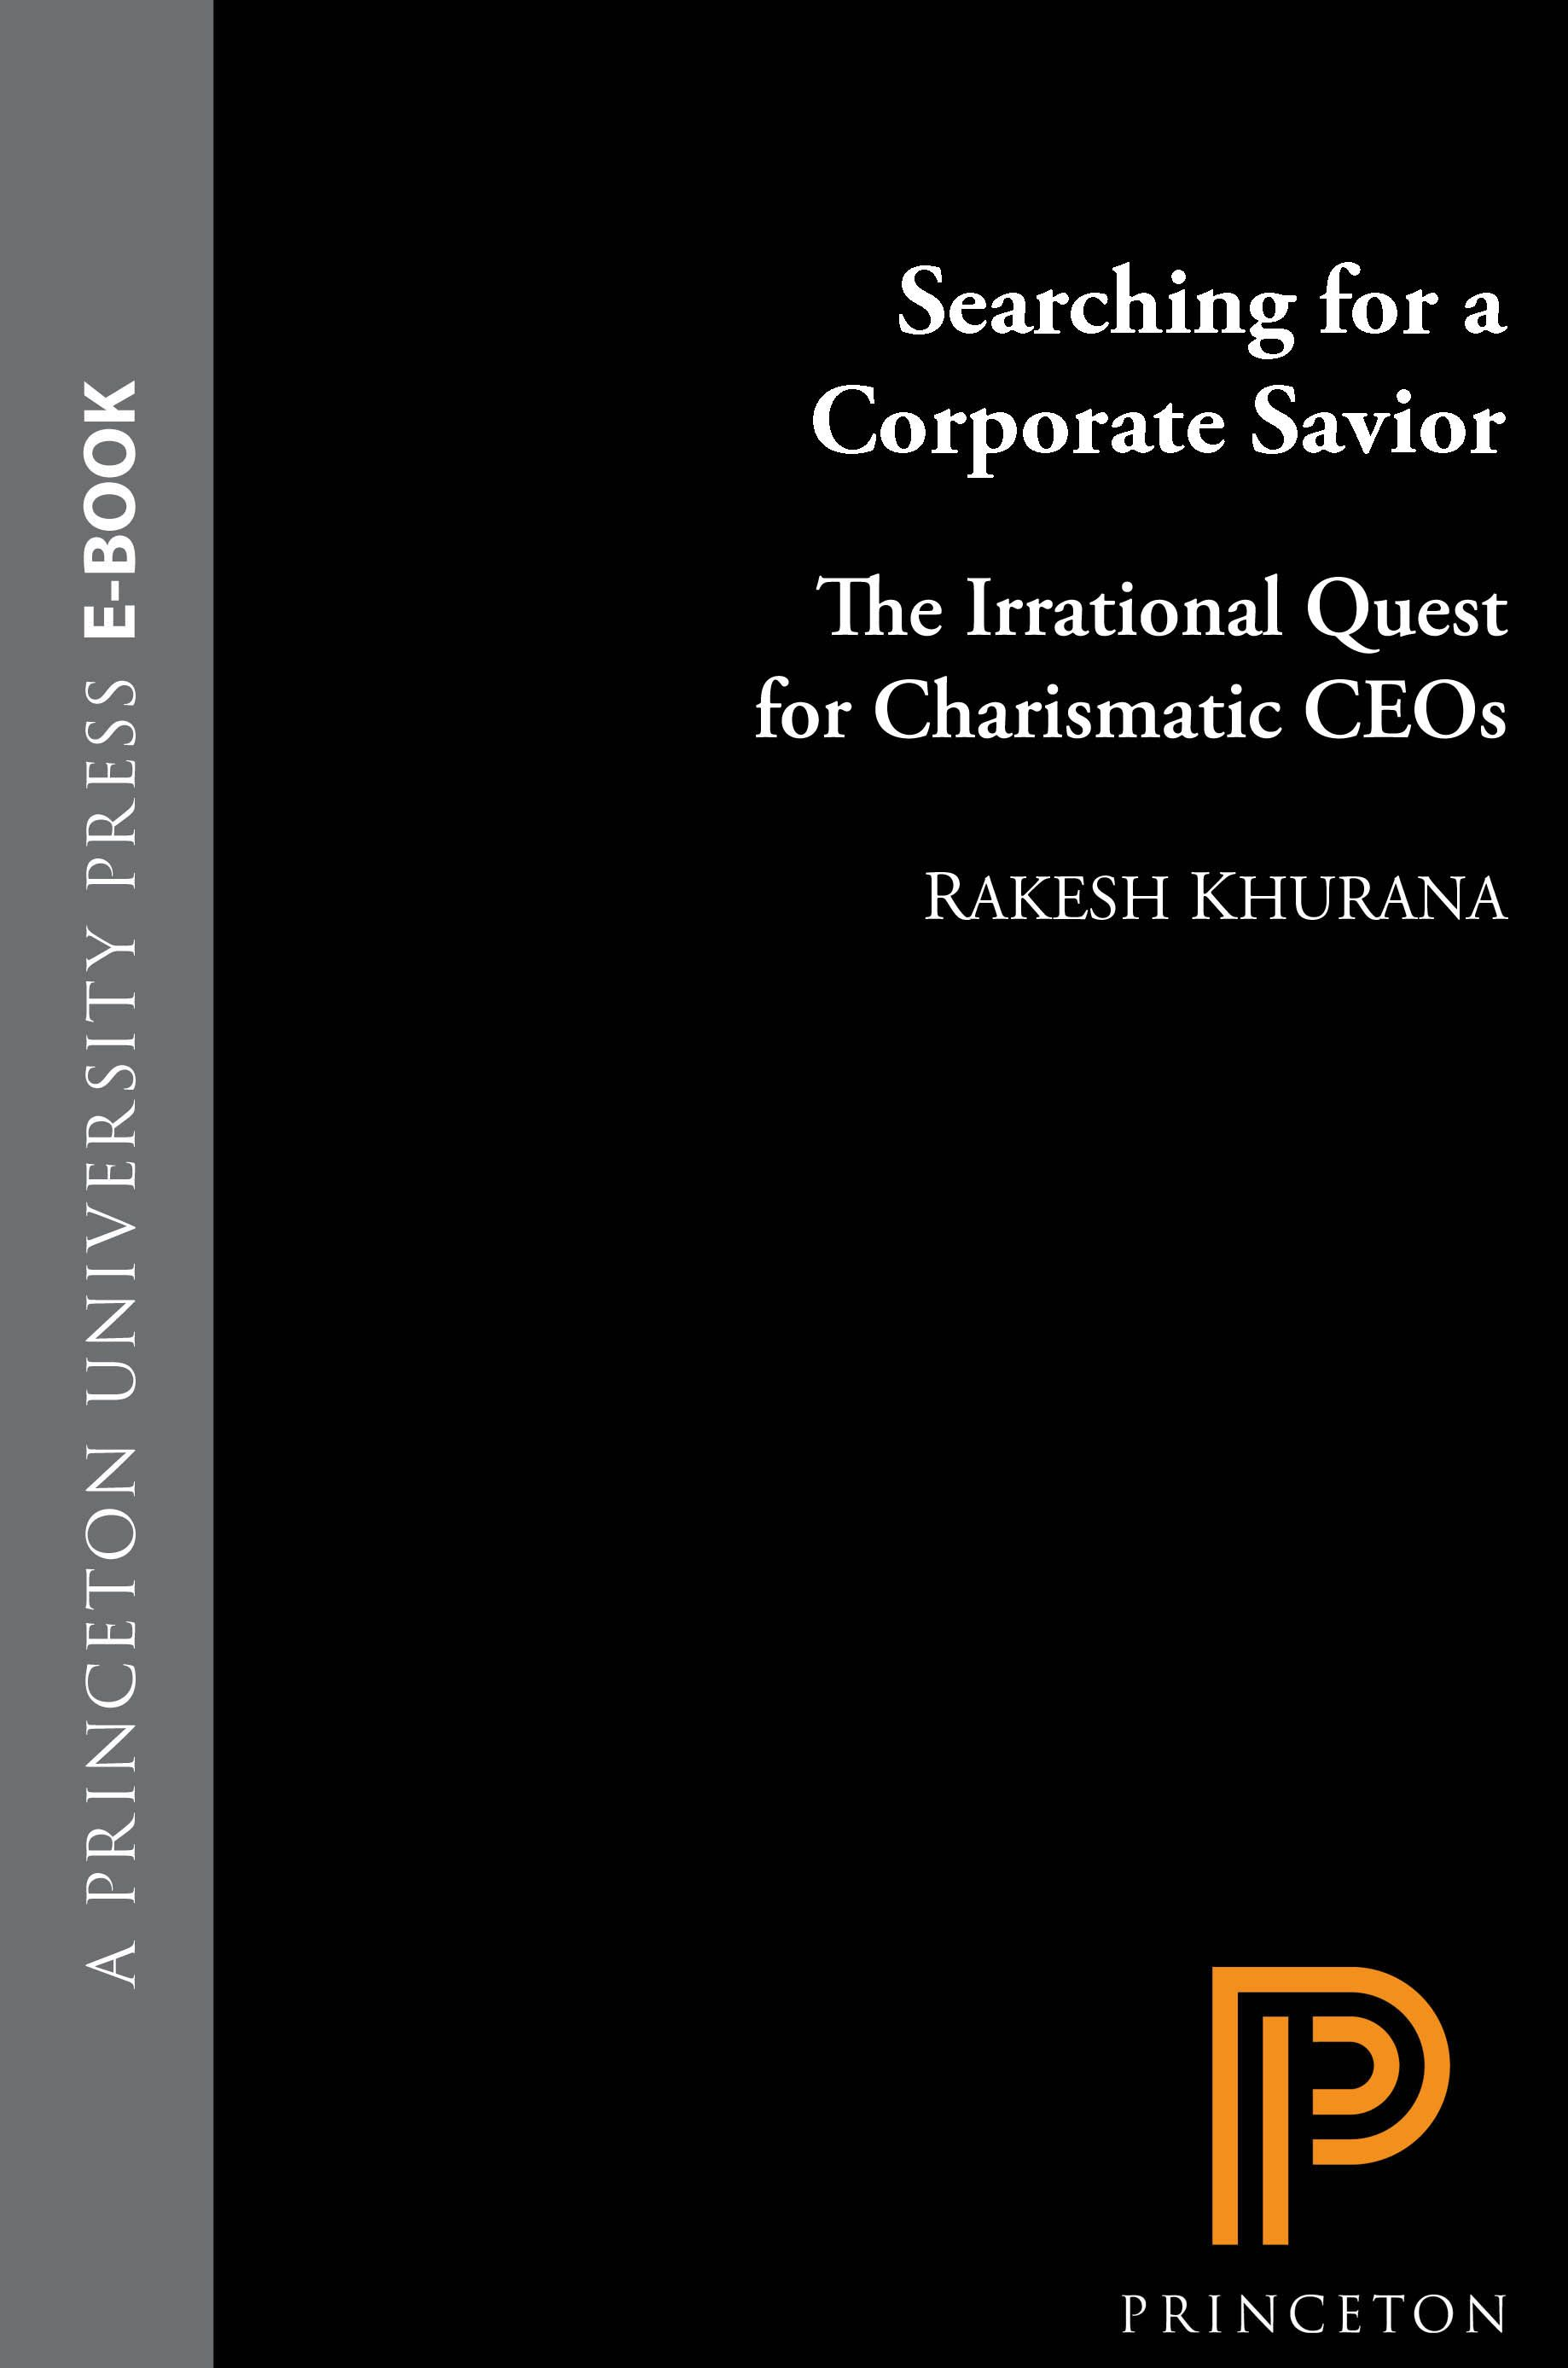 Searching for a Corporate Savior By: Rakesh Khurana